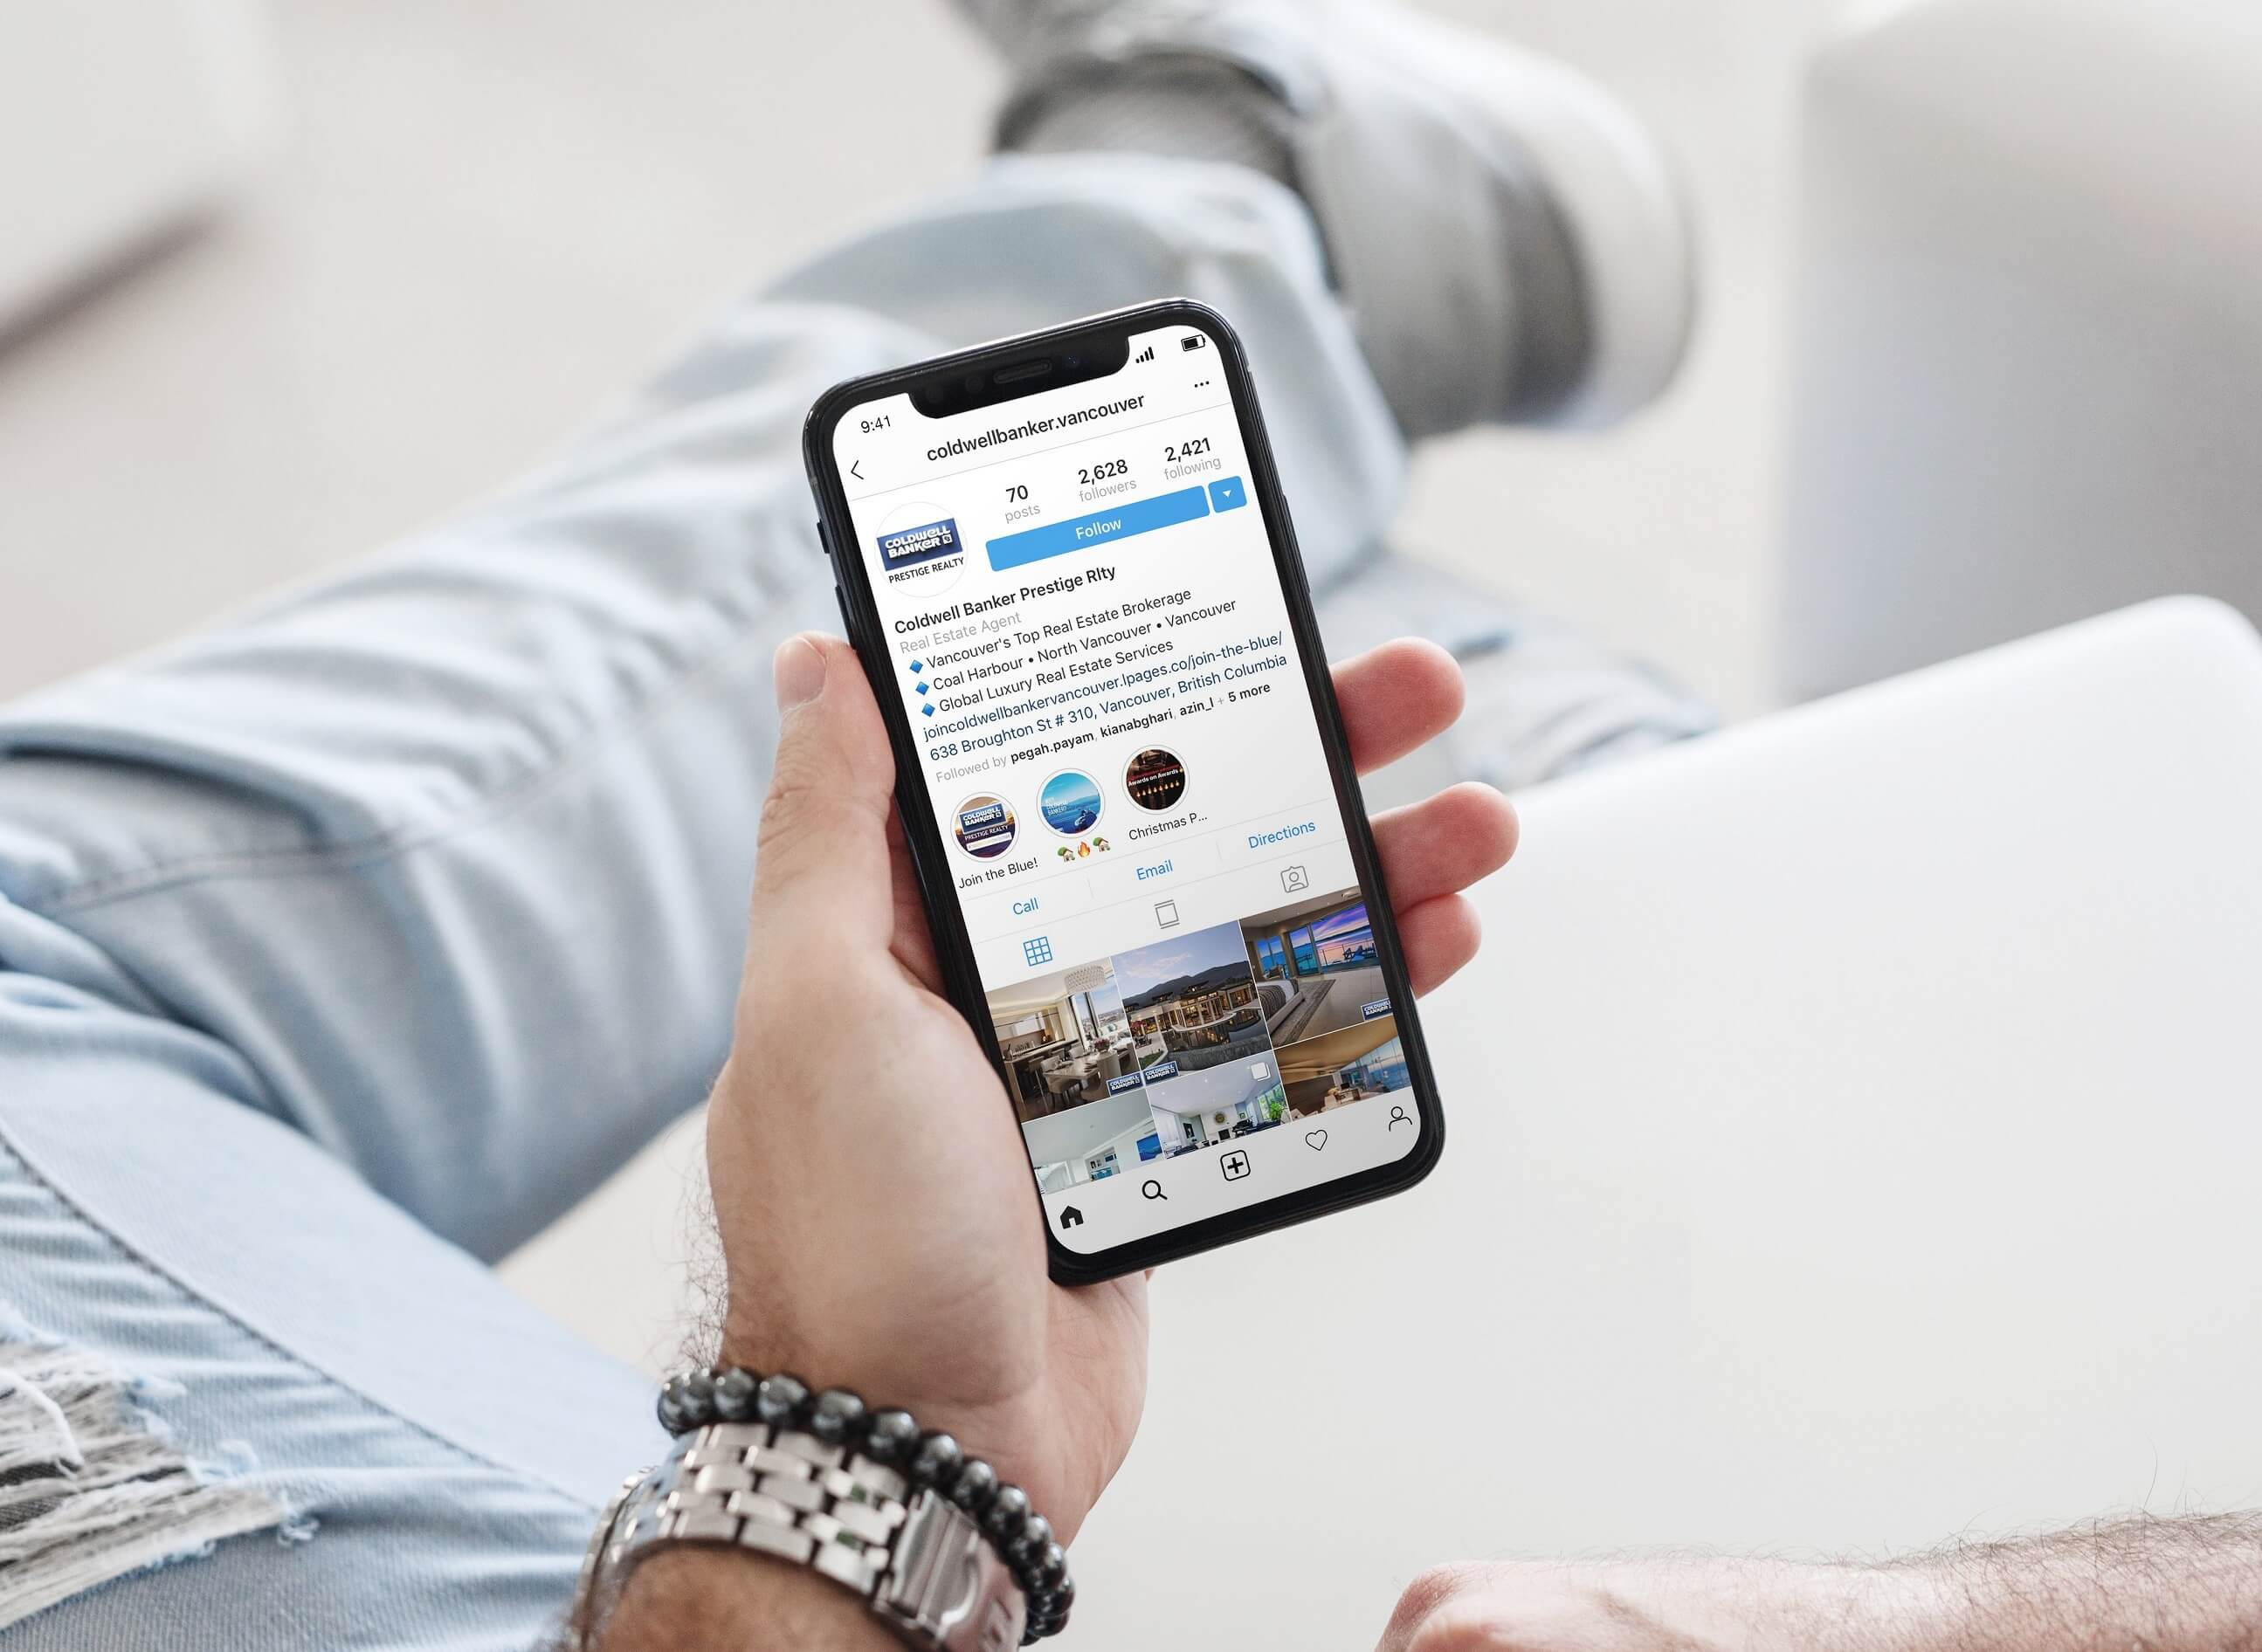 Coldwell Banker Instagram Growth